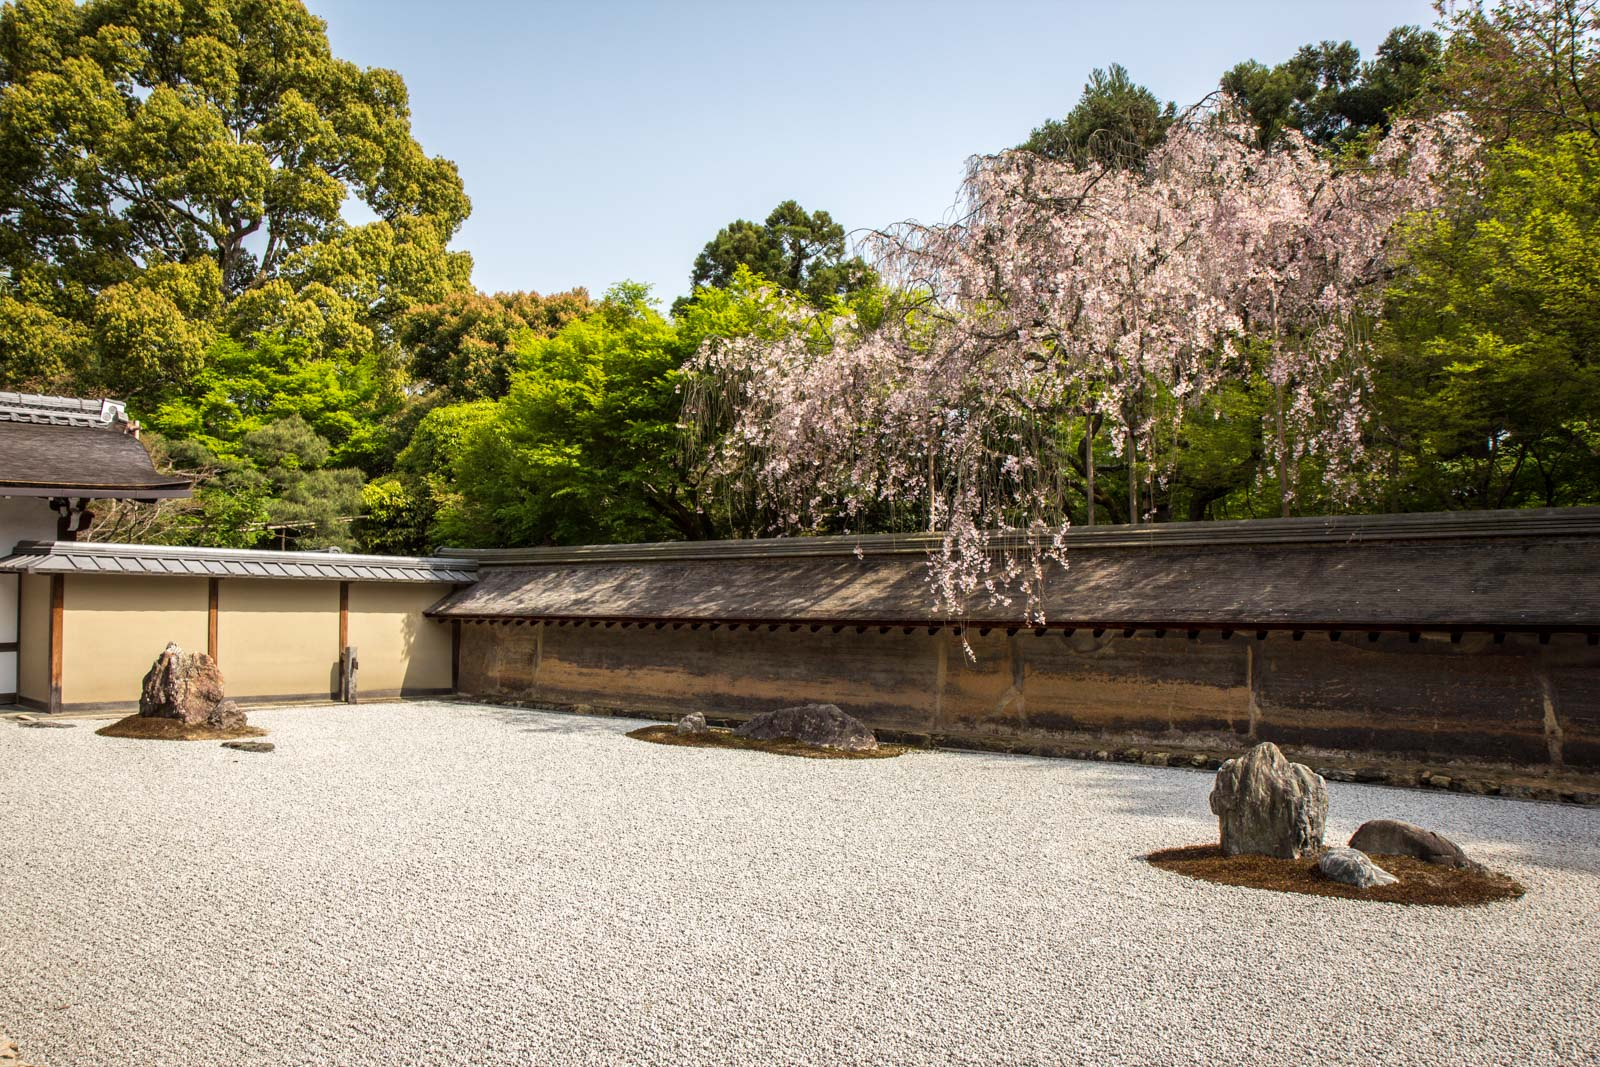 Best temples and shrines in Kyoto, Japan